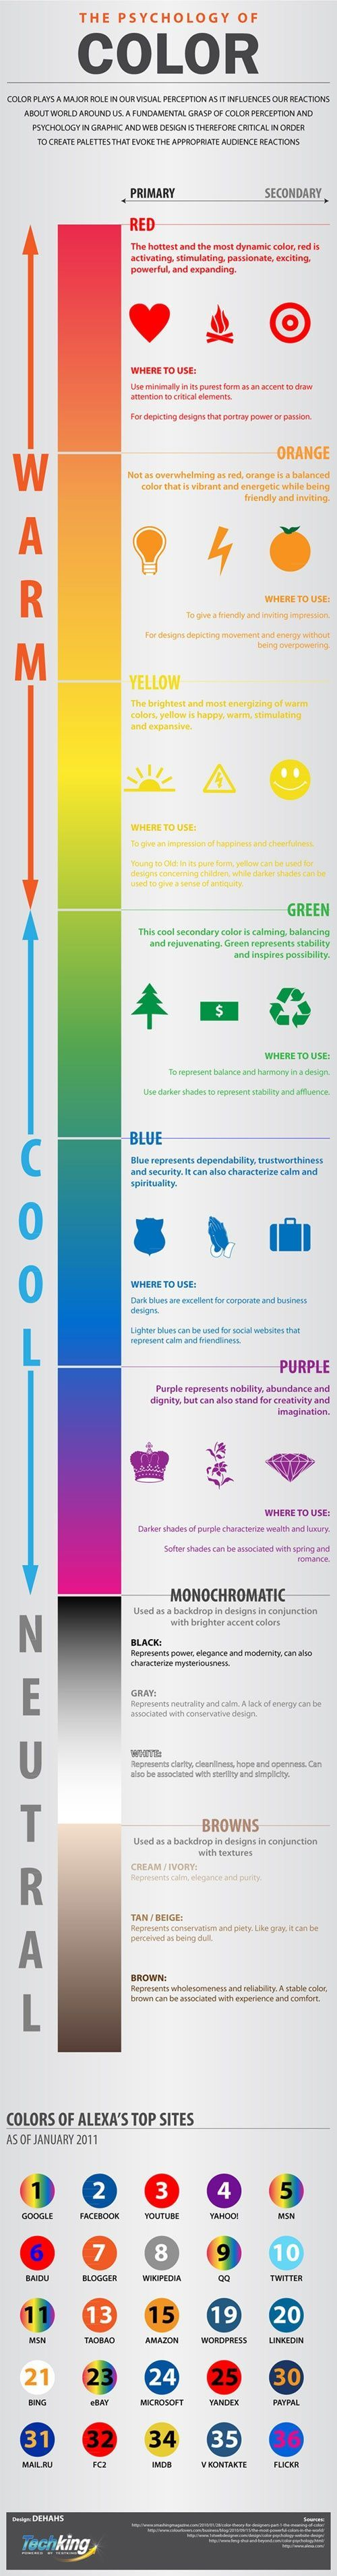 UX/UI Design / The Psychology of Color: